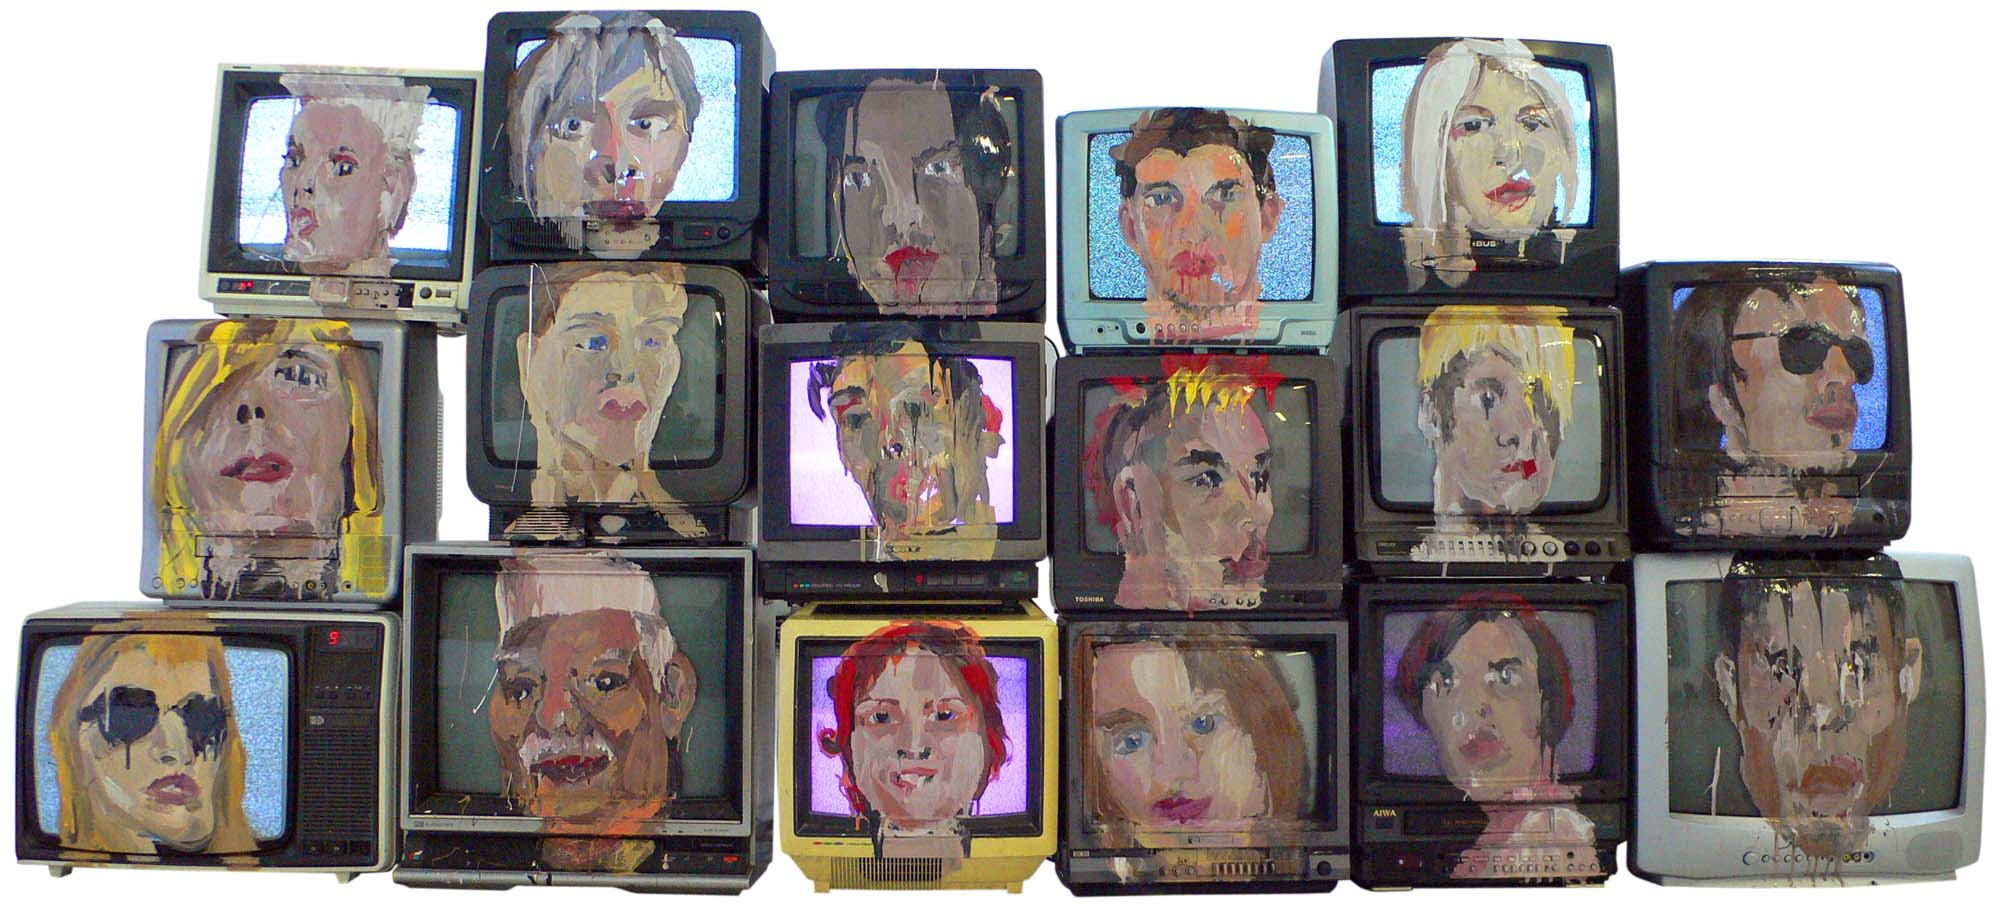 17 Televisions